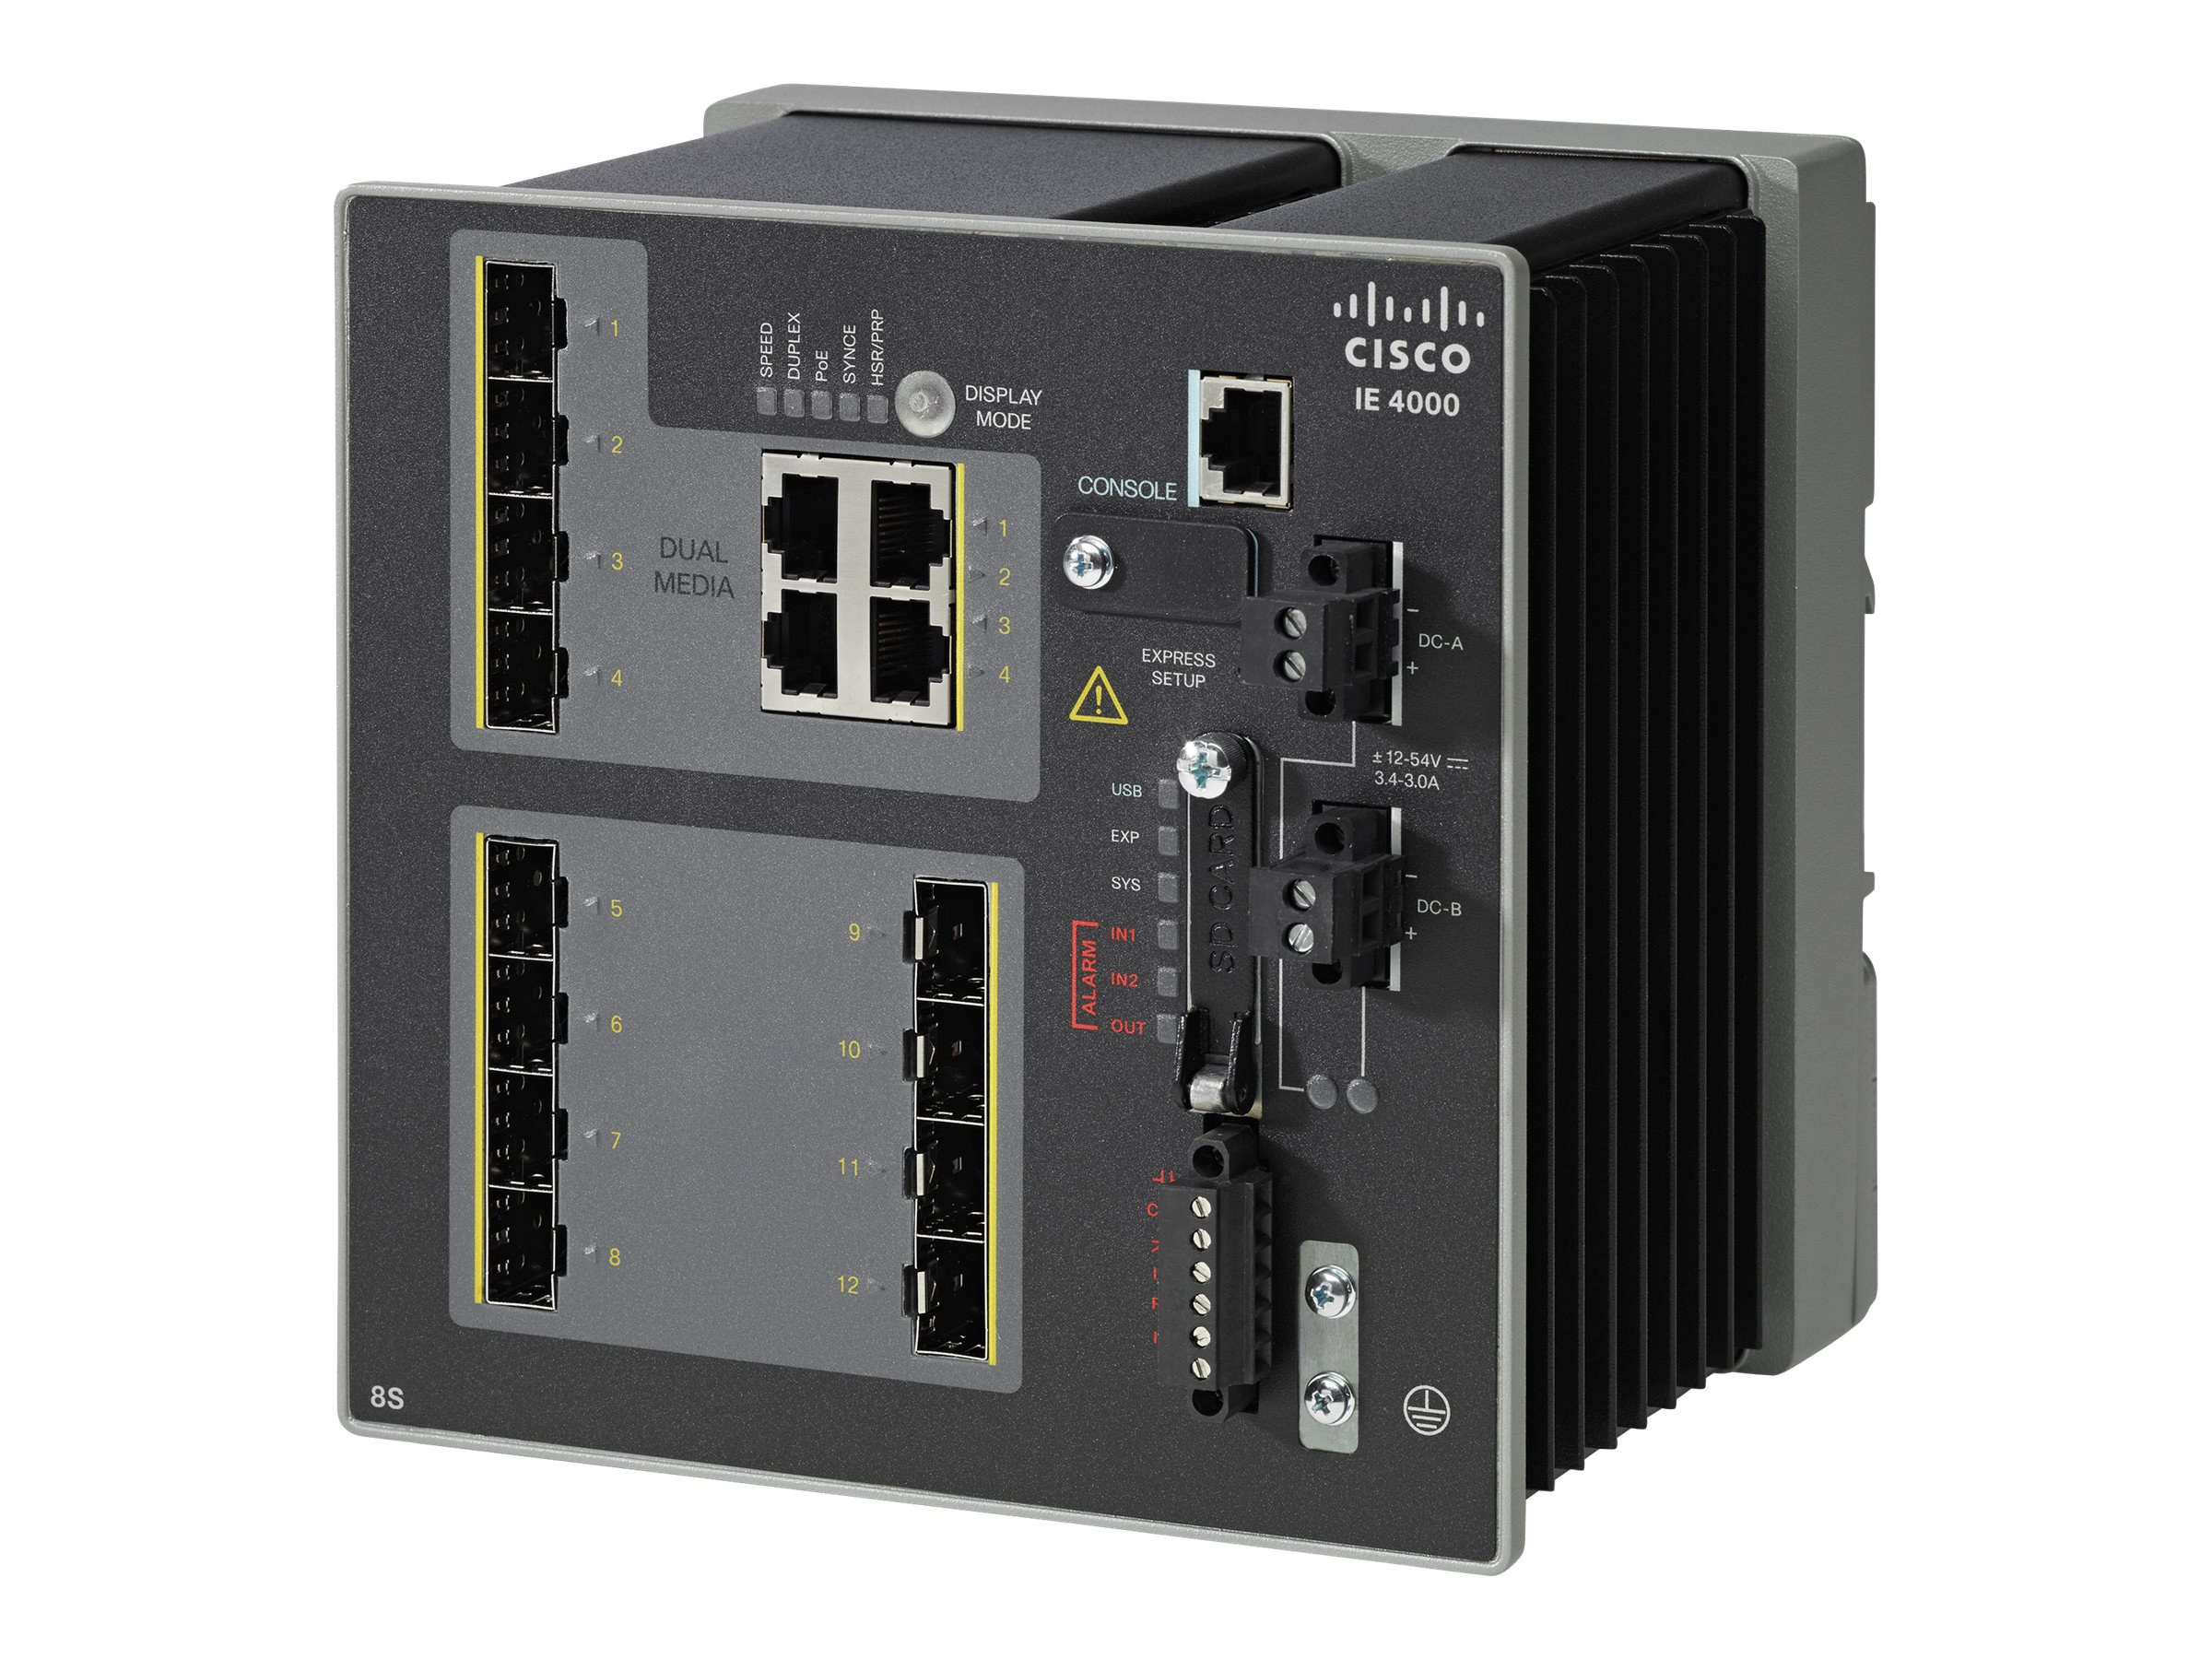 Cisco IE-4000-8S4G-E Image 1